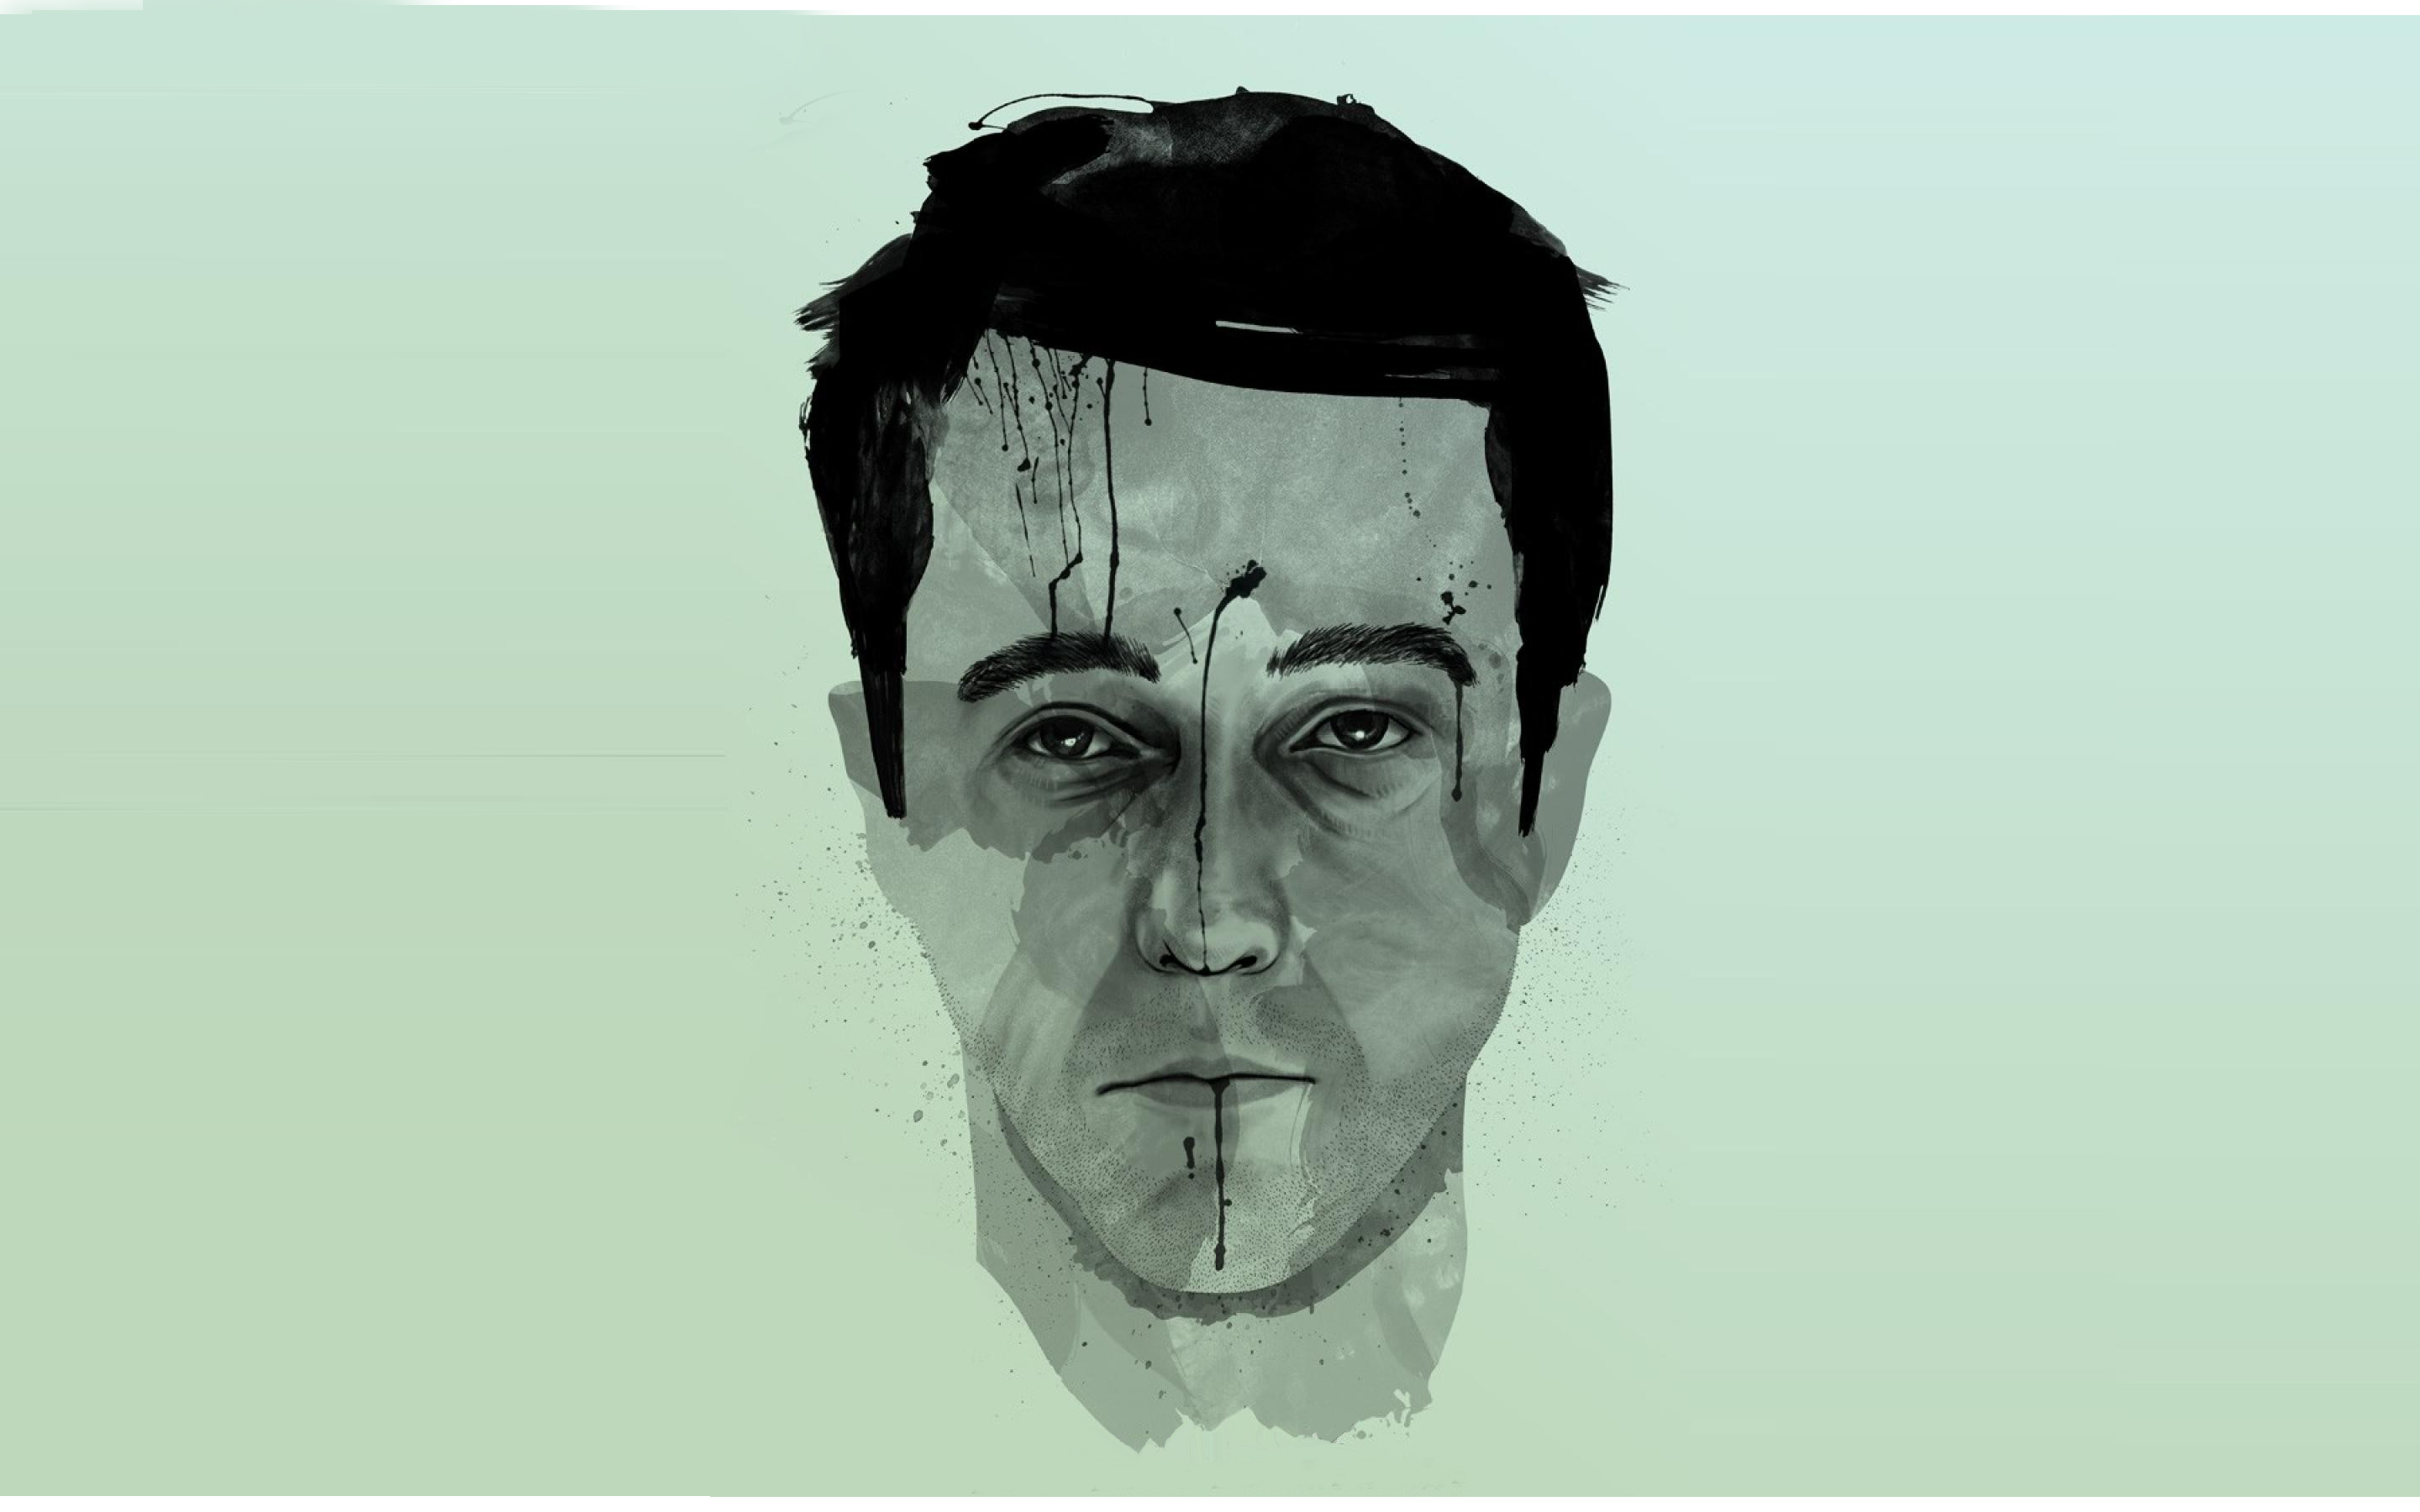 Fight Club HD Wallpaper Background Image 2880x1800 ID492372 2880x1800